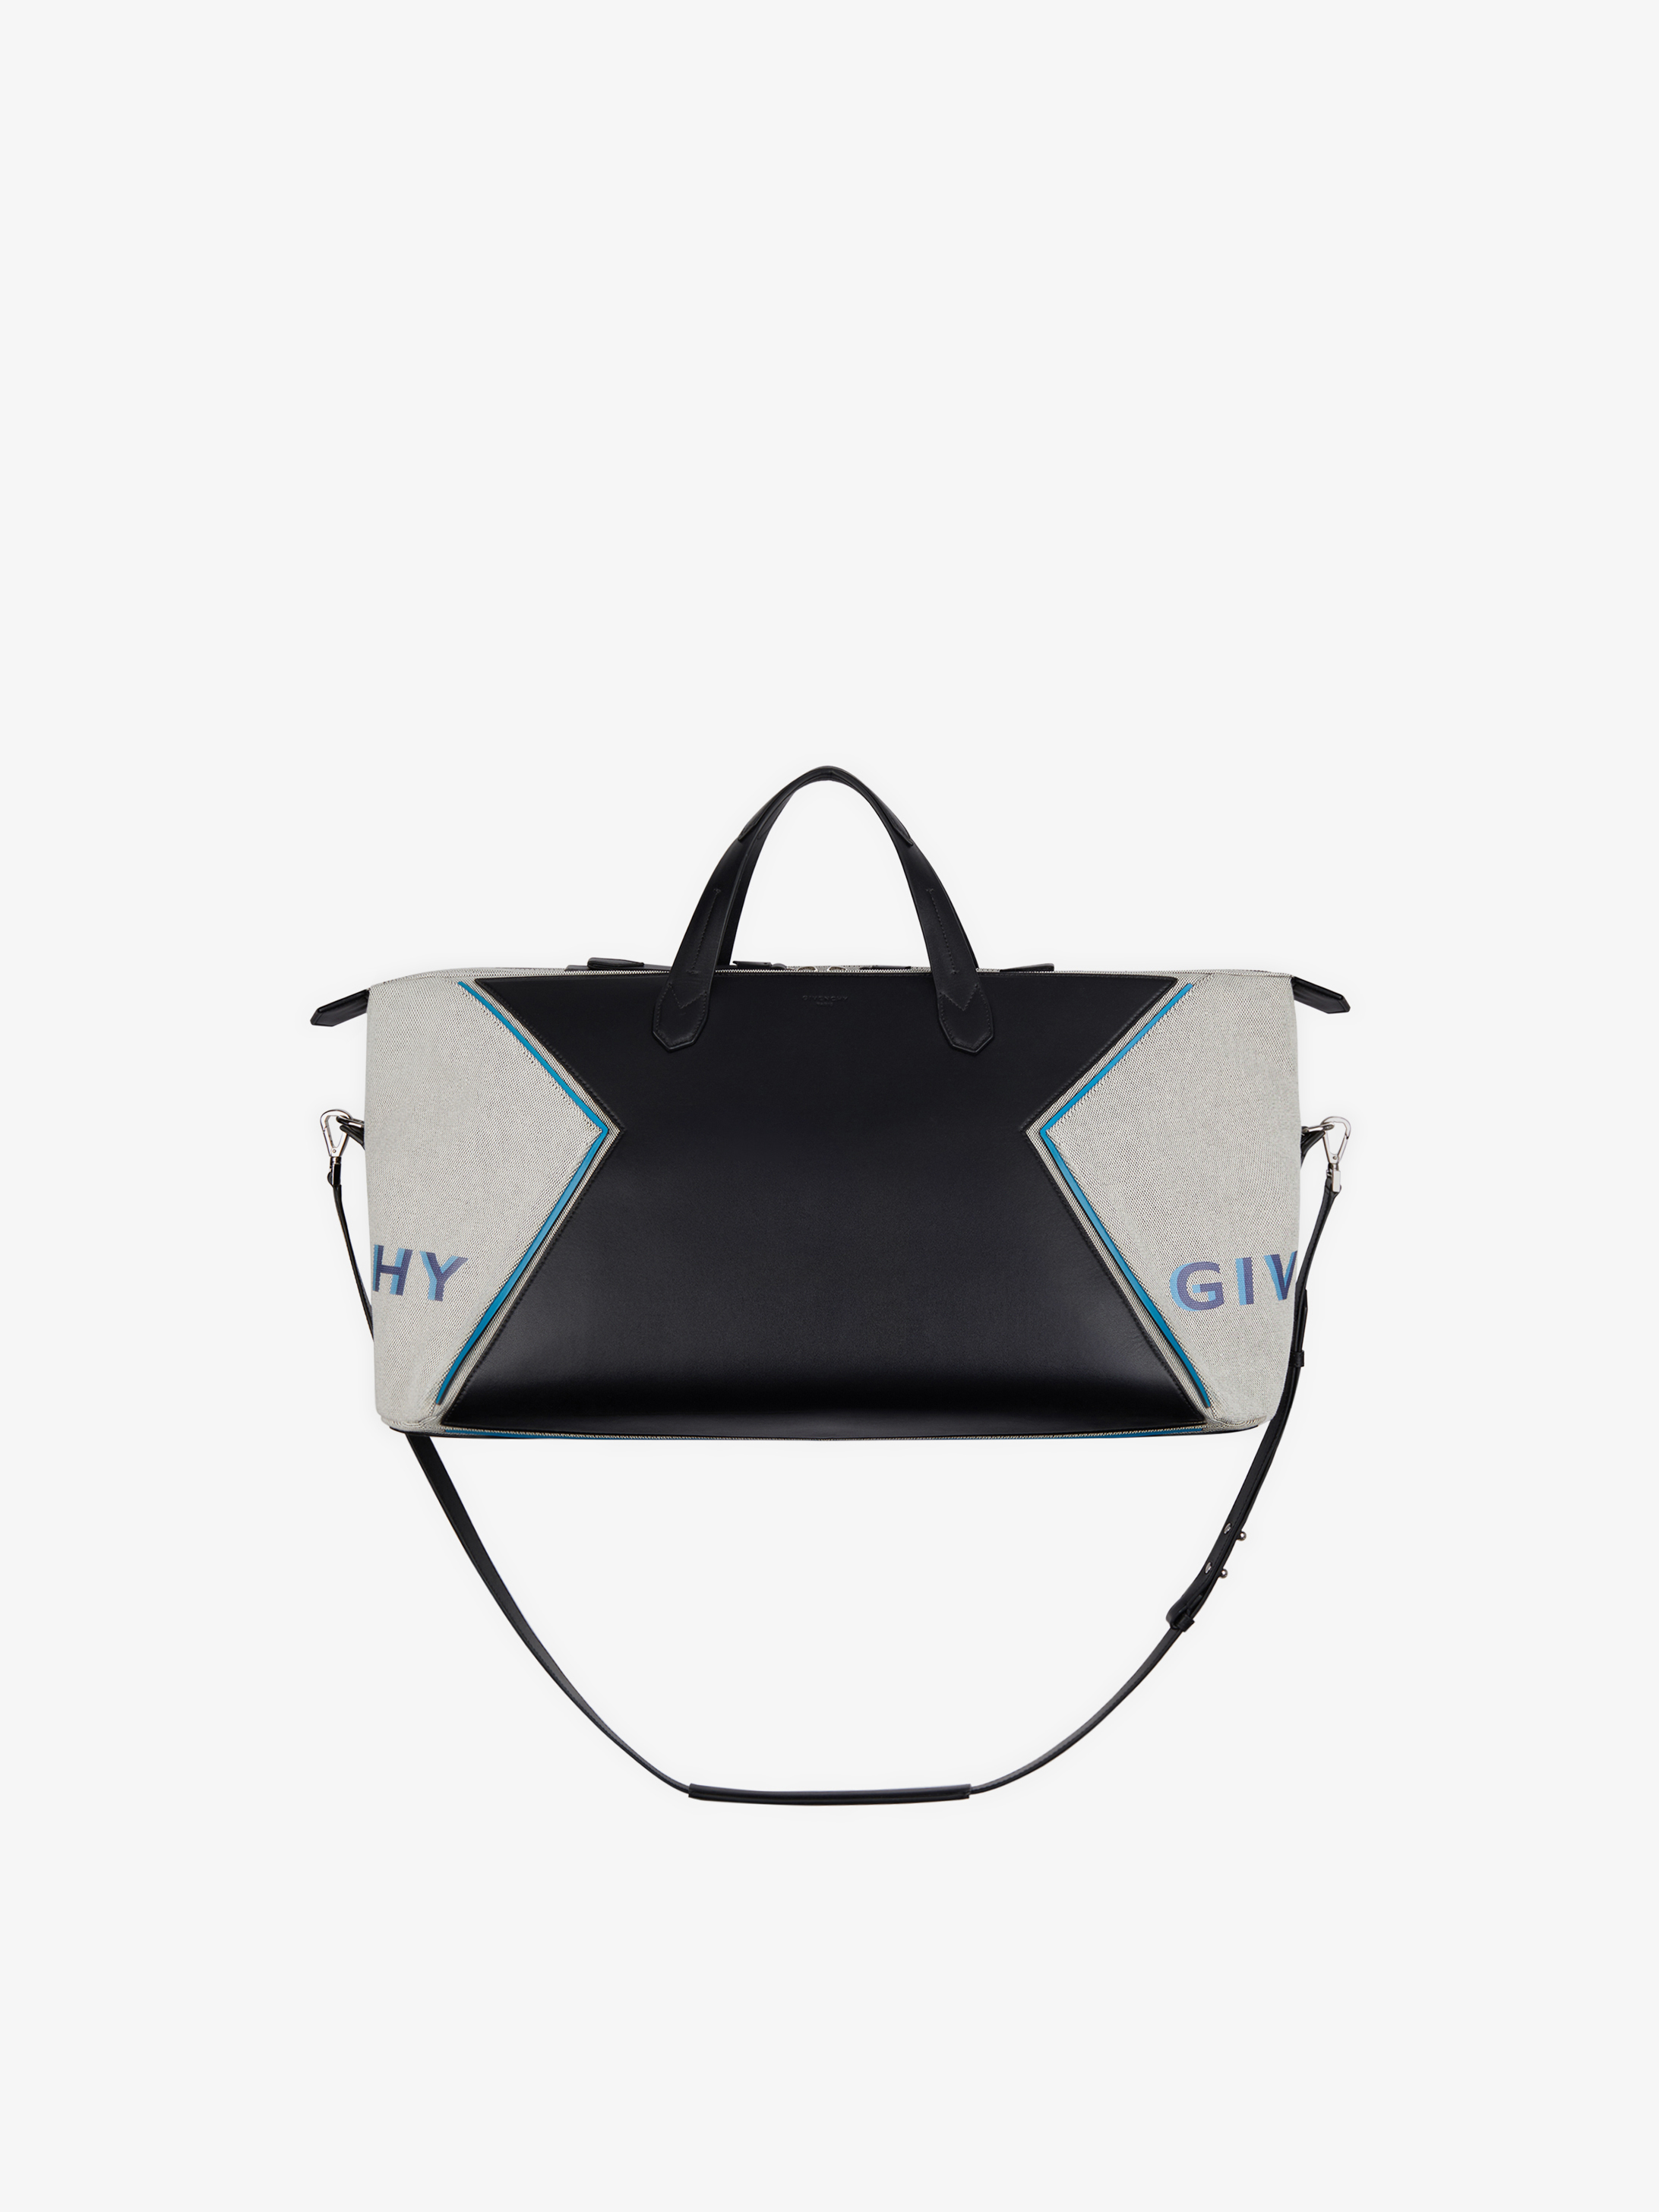 GIVENCHY PARIS Bond weekender bag in leather and canvas